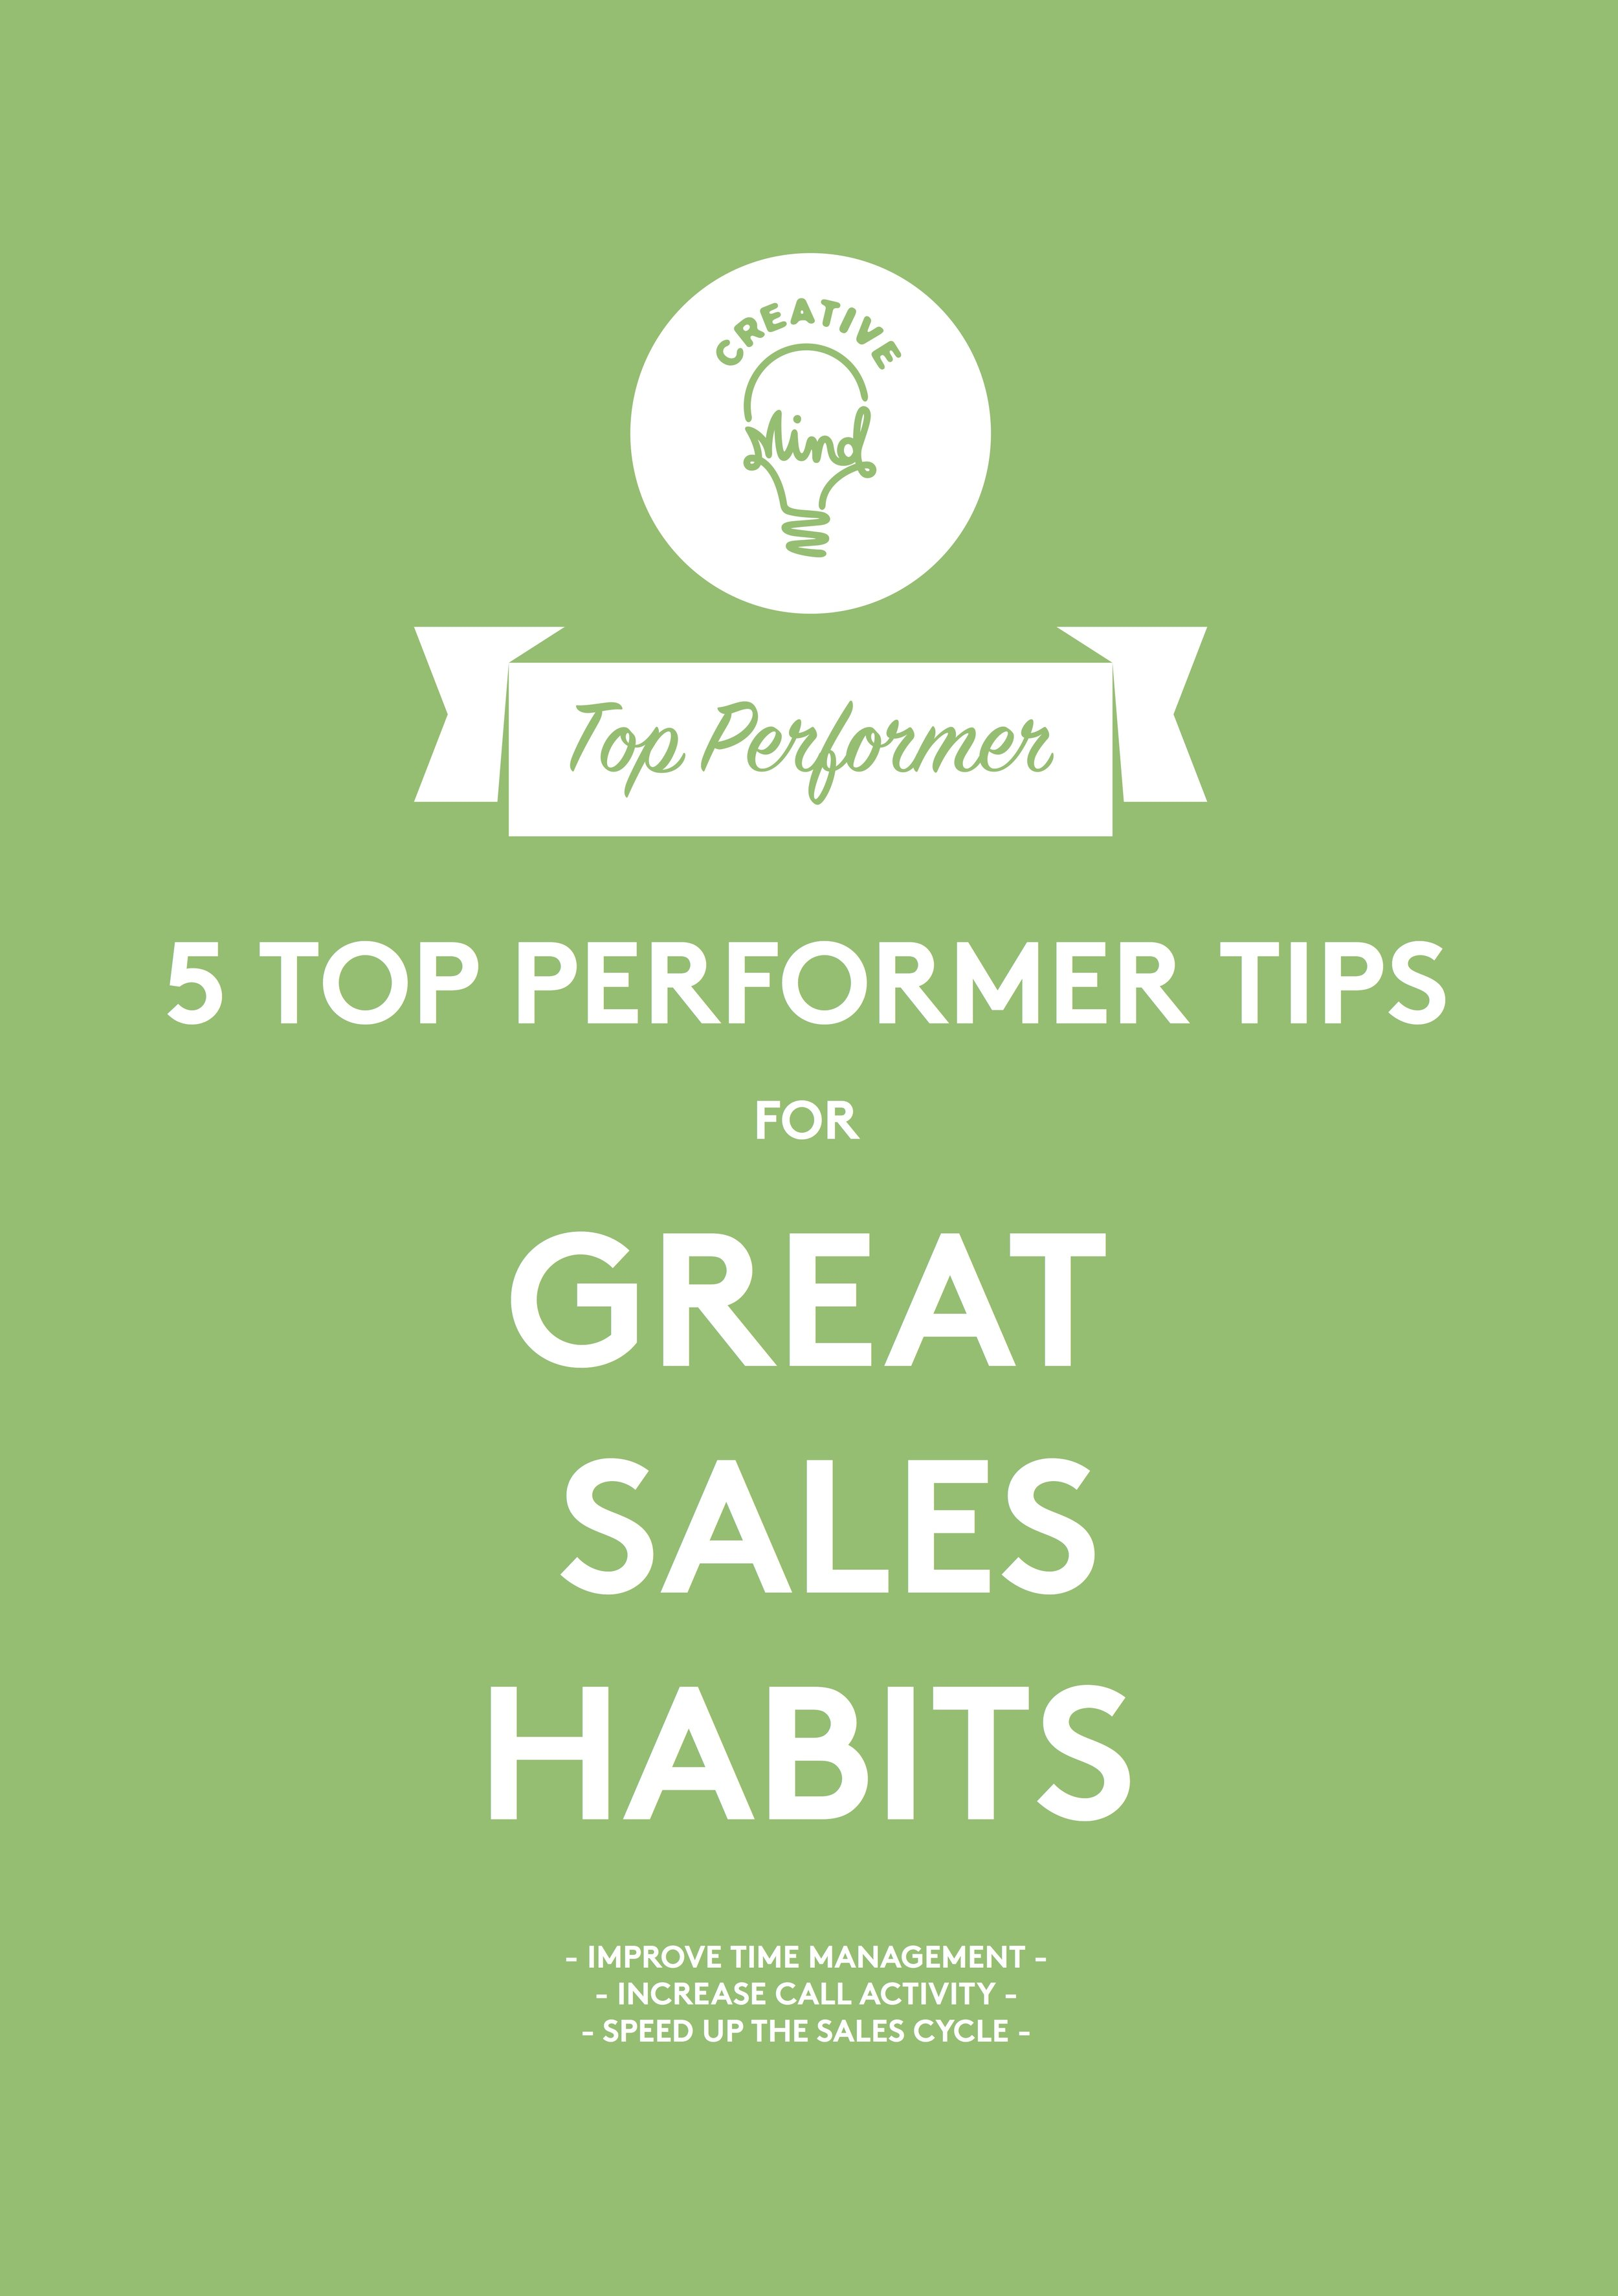 Great sales habits_Front cover copy.jpg